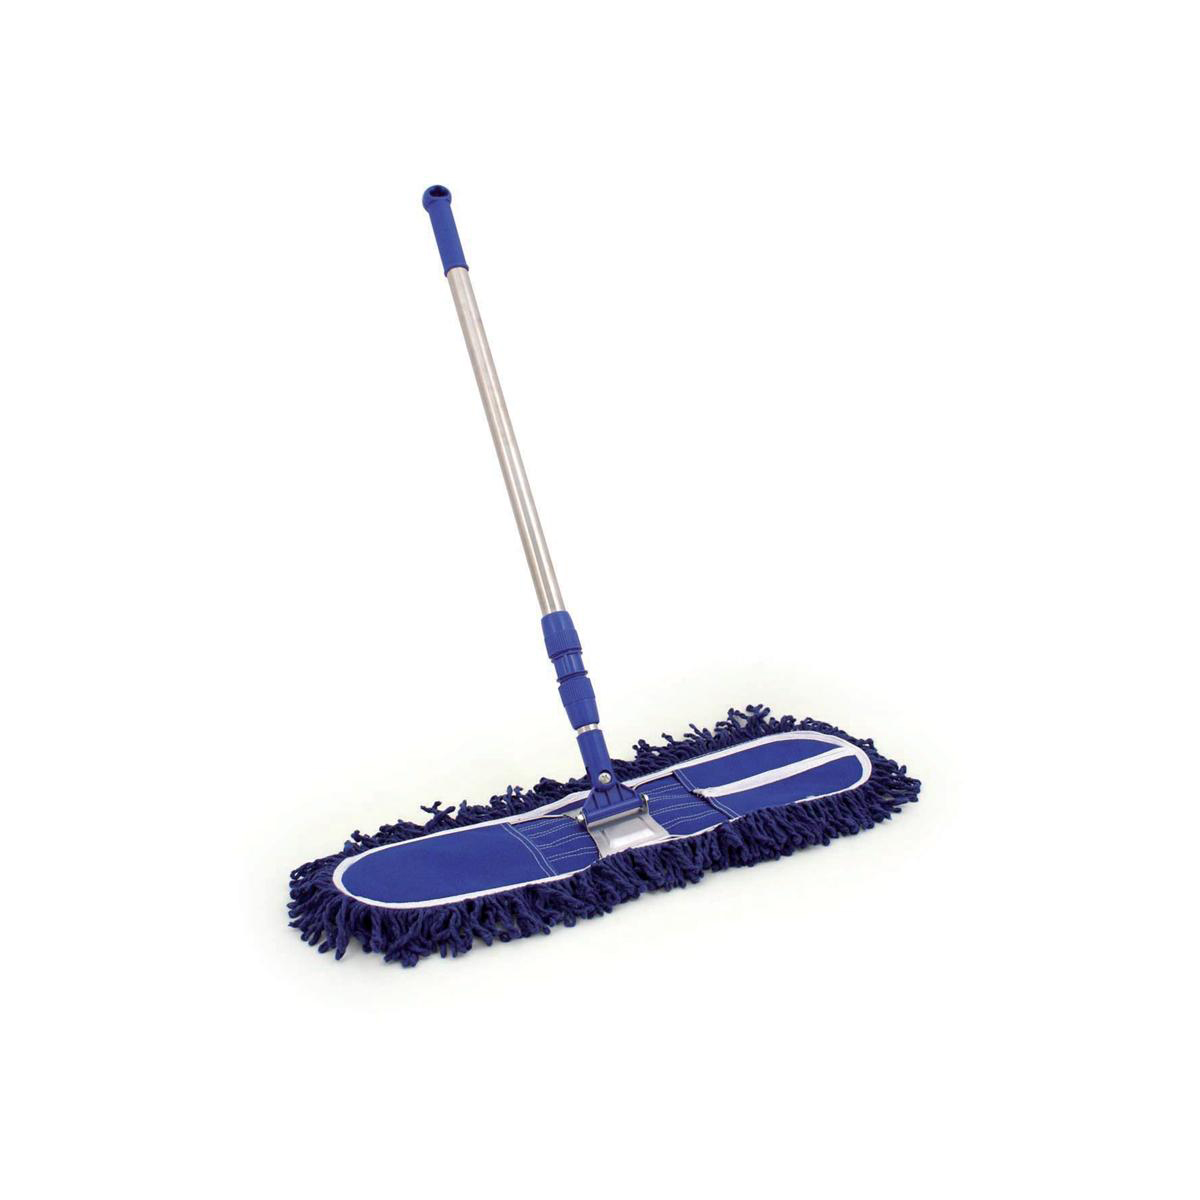 Brushes & Brooms Bentley Dustbeater Sweeper with Telescopic Handle (60cm Blue head) Ref SPC/DB60